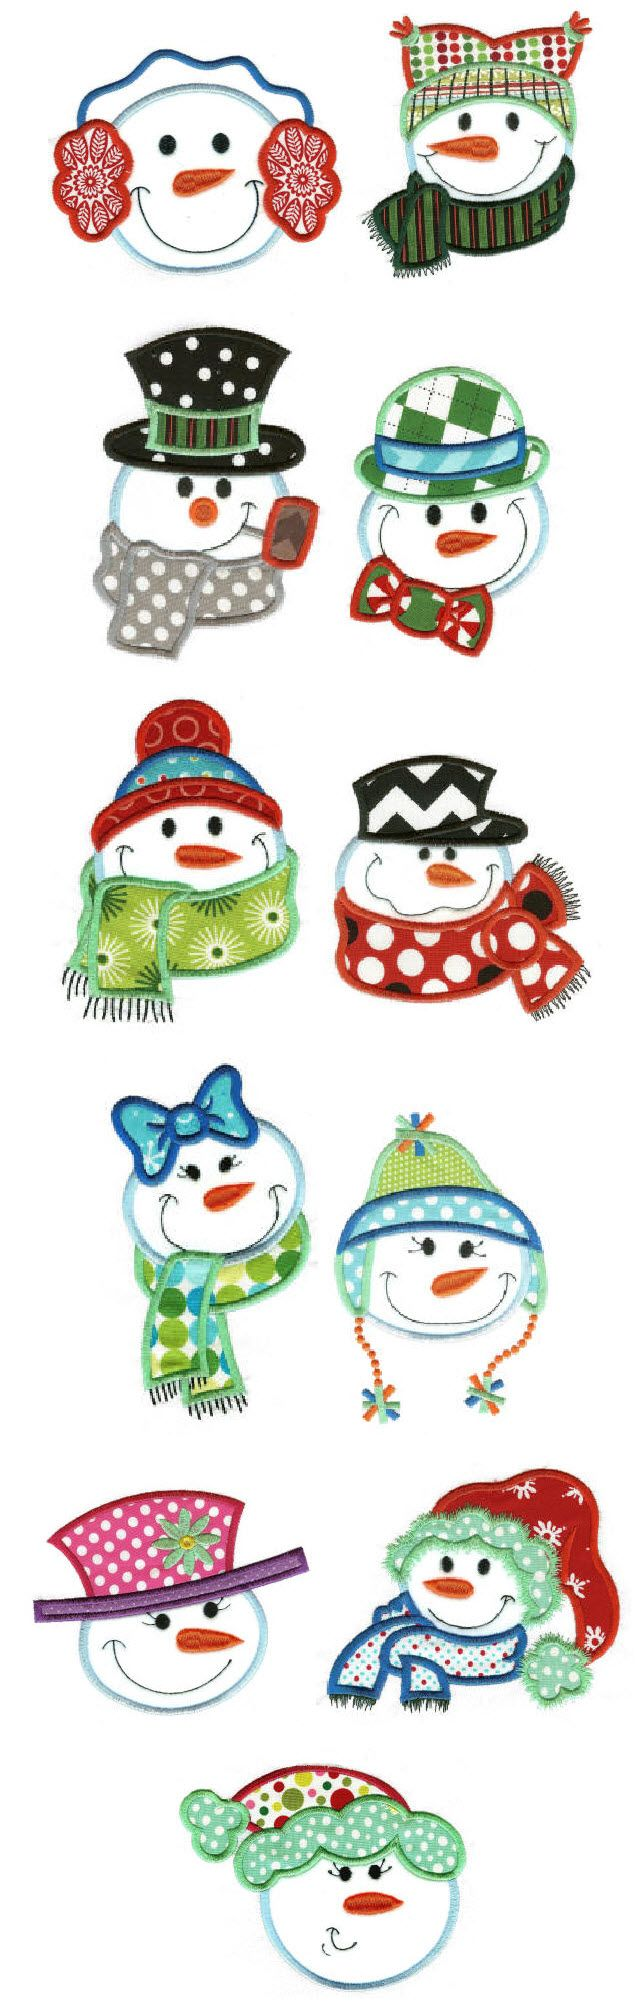 Embroidery | Applique Machine Embroidery Designs | Snow Buddies Applique